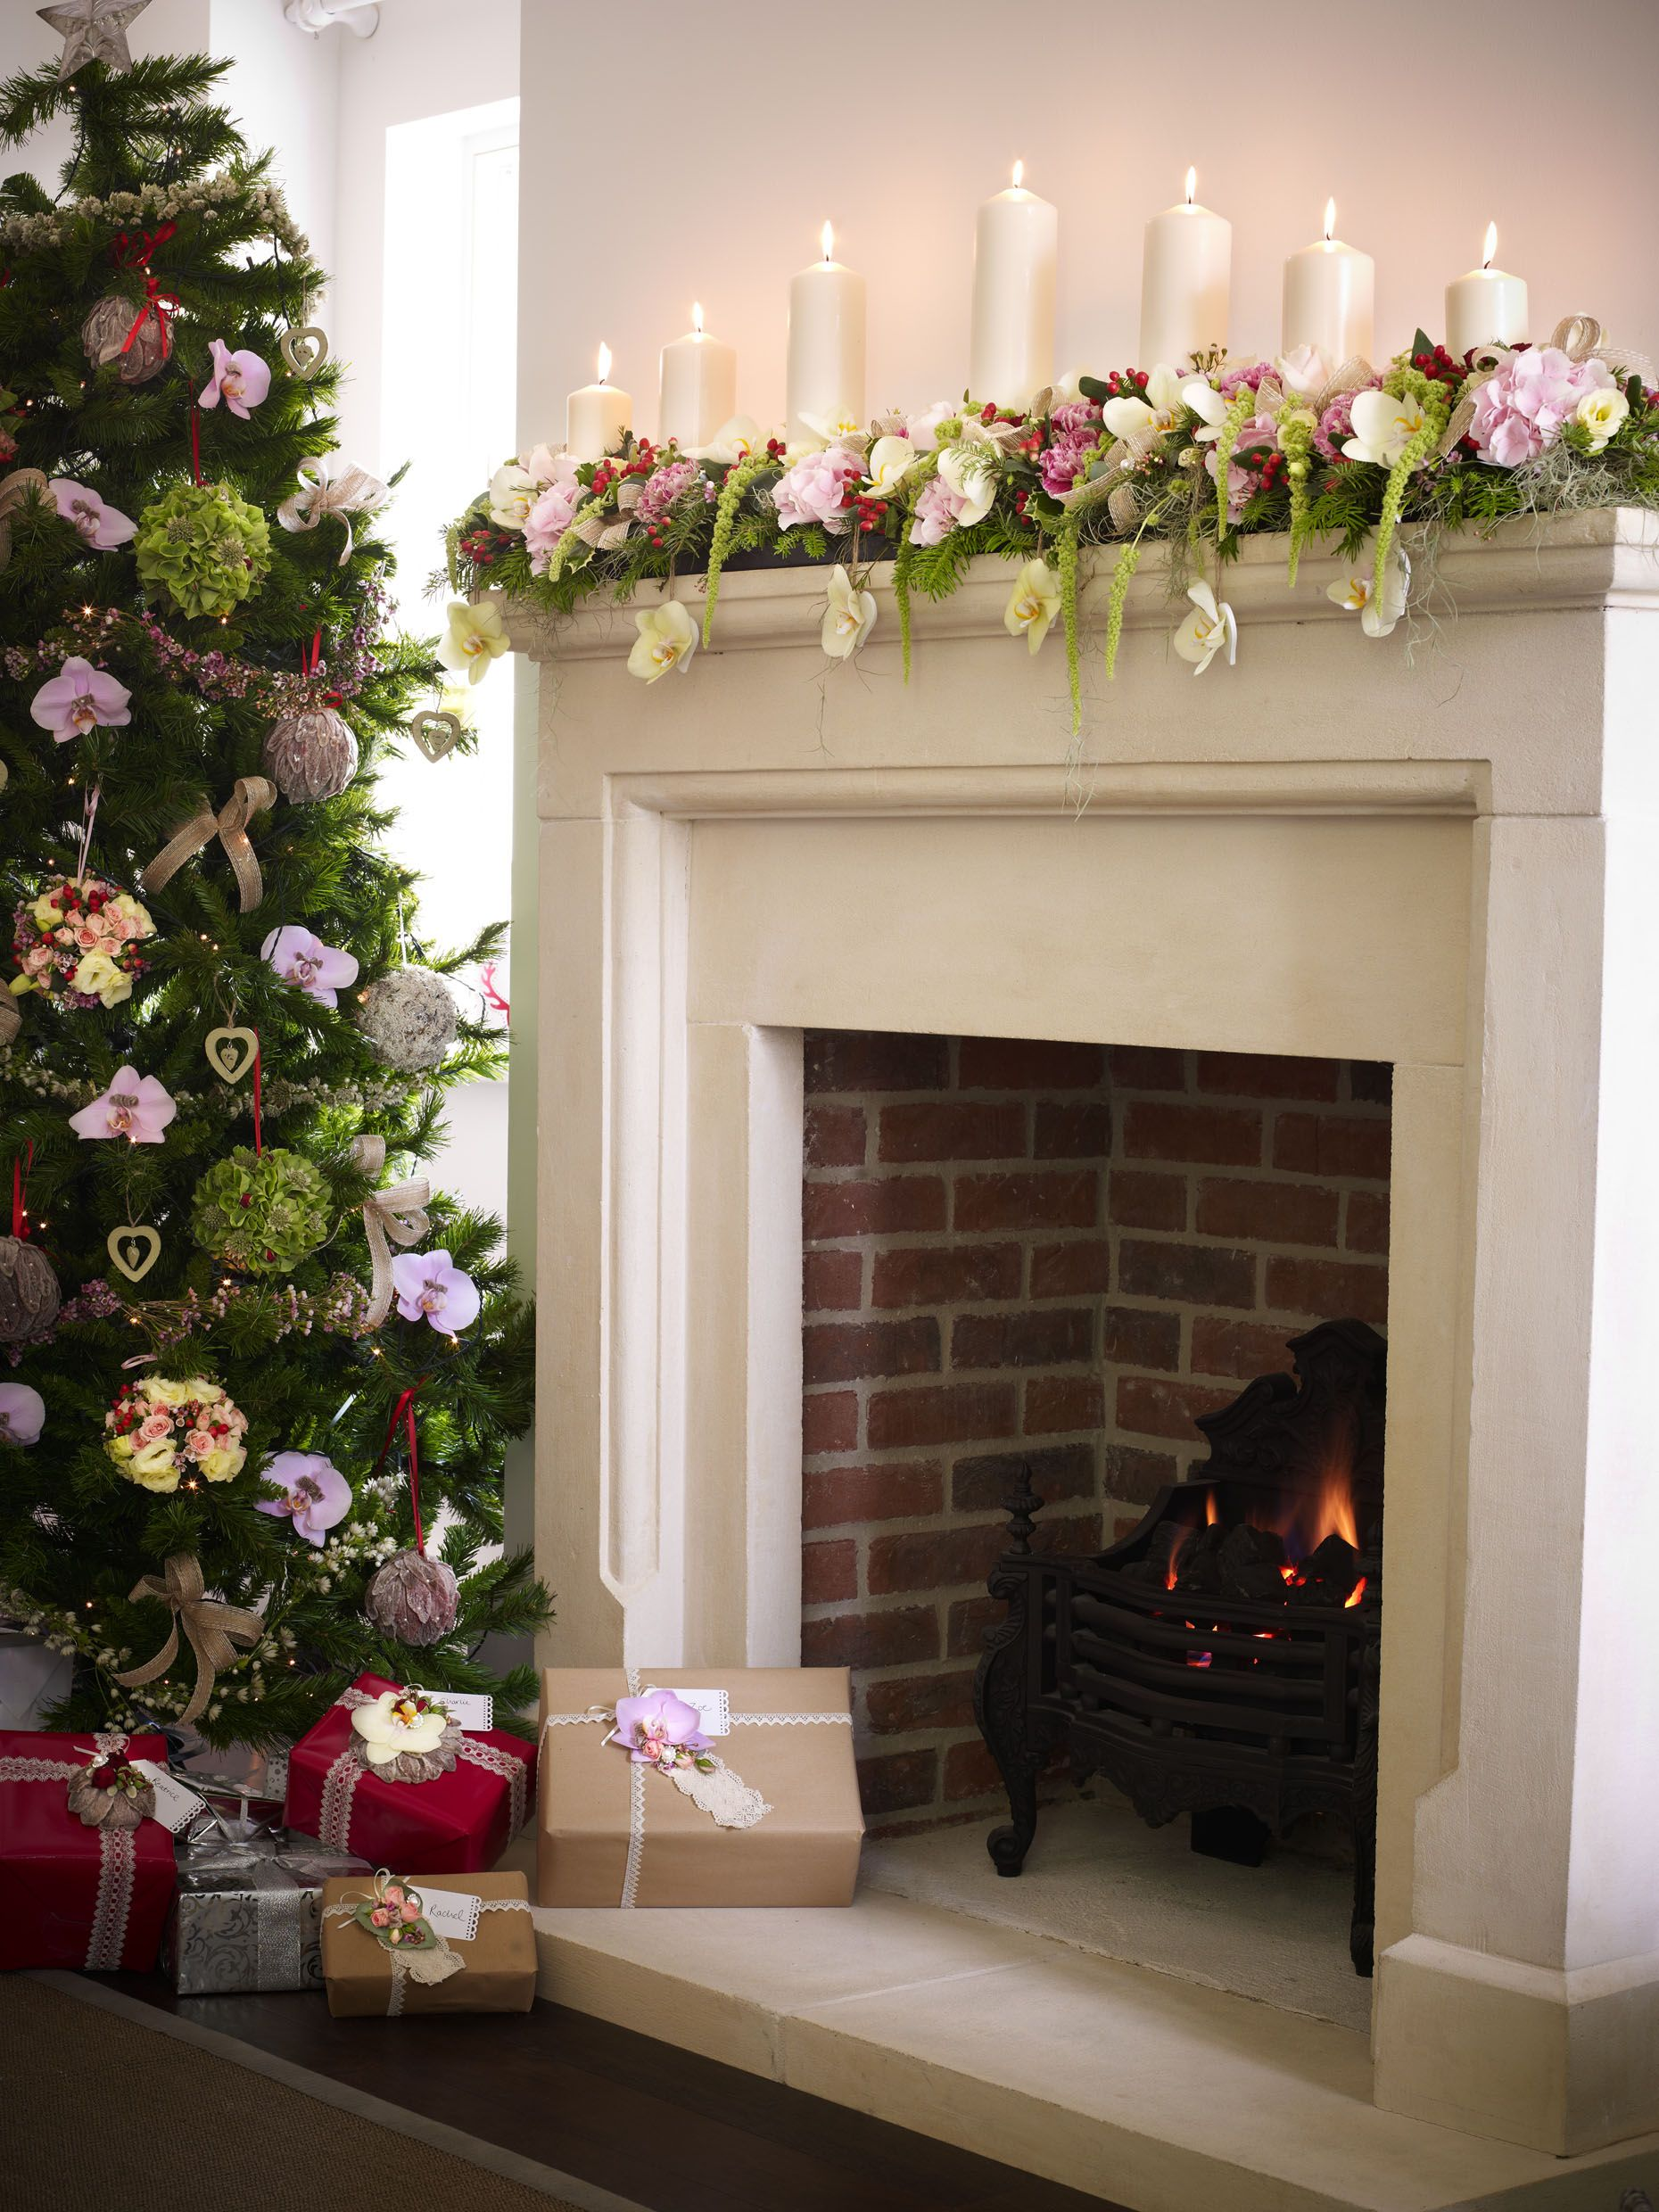 Christmas Fireplace Decorated With Stunning Candle Arrangement Adorned Fresh Flowers